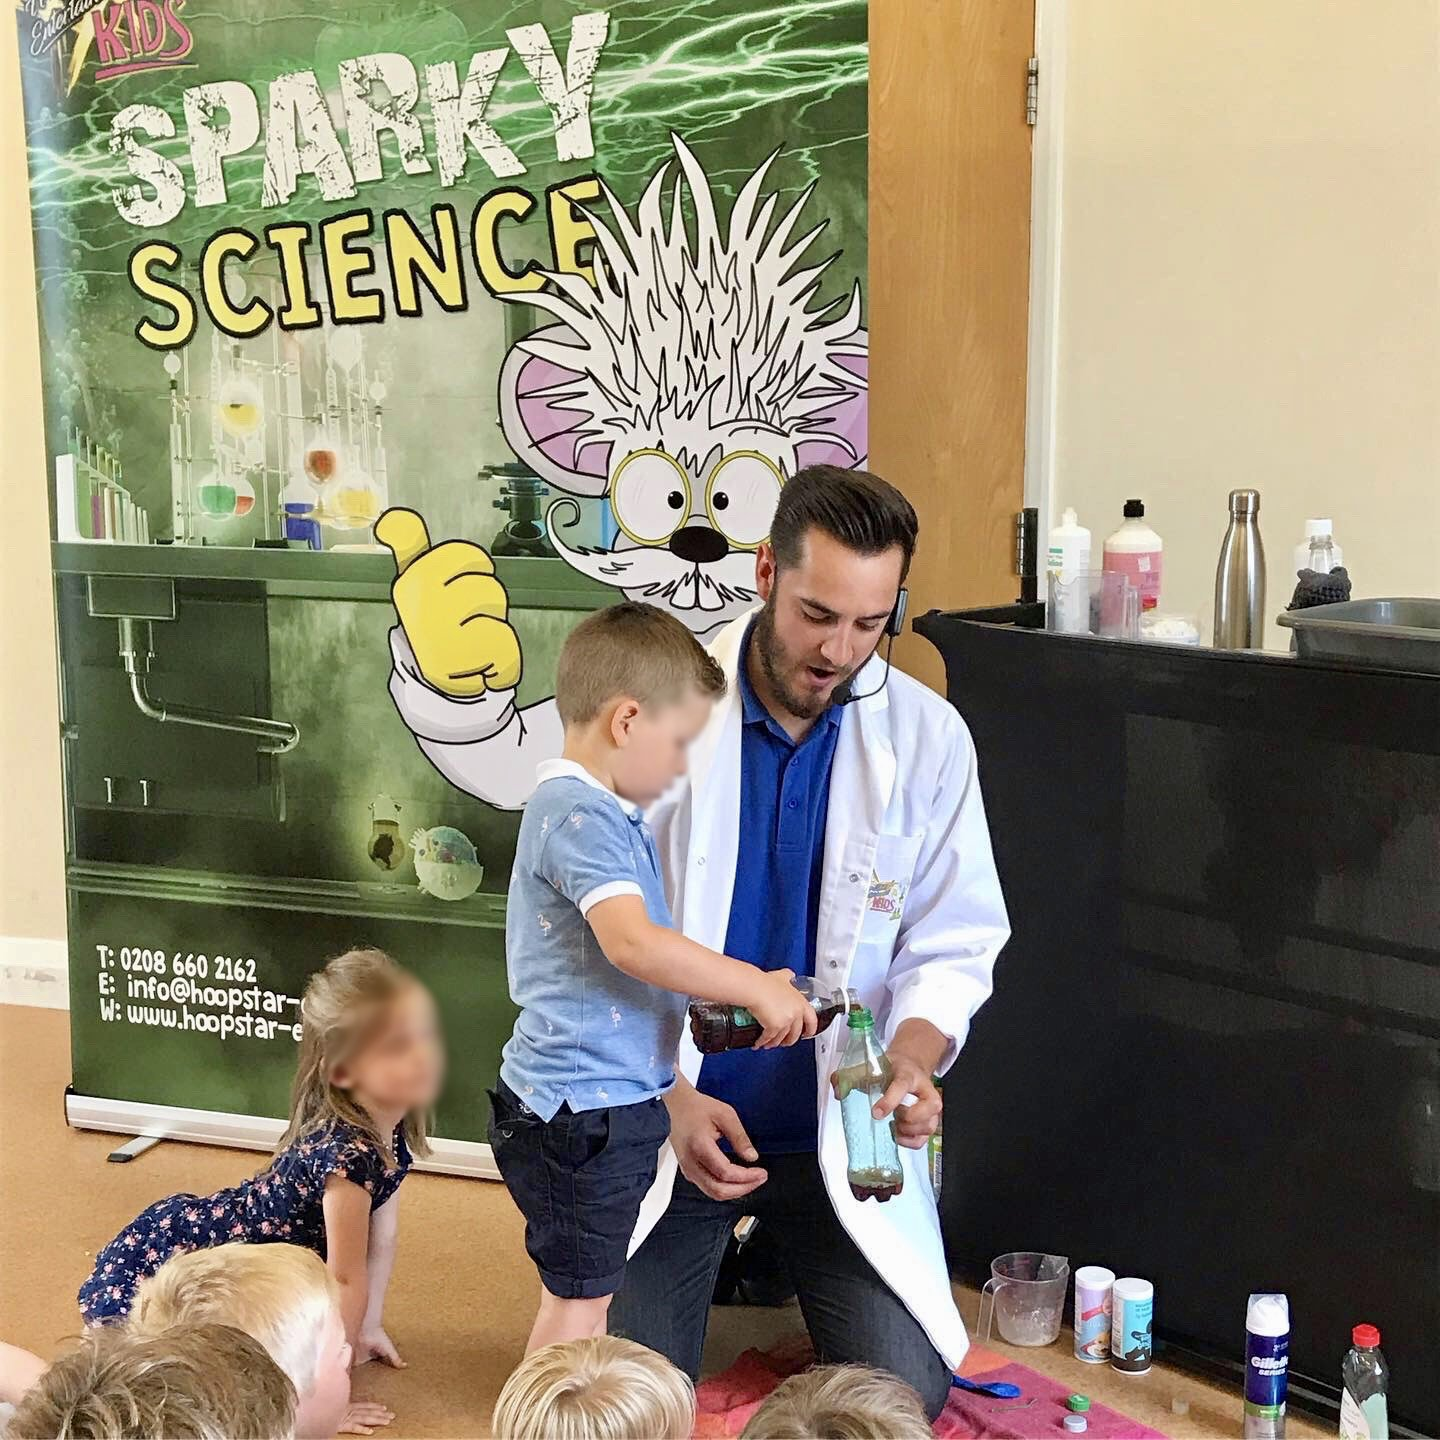 professor sparky performing science experiment